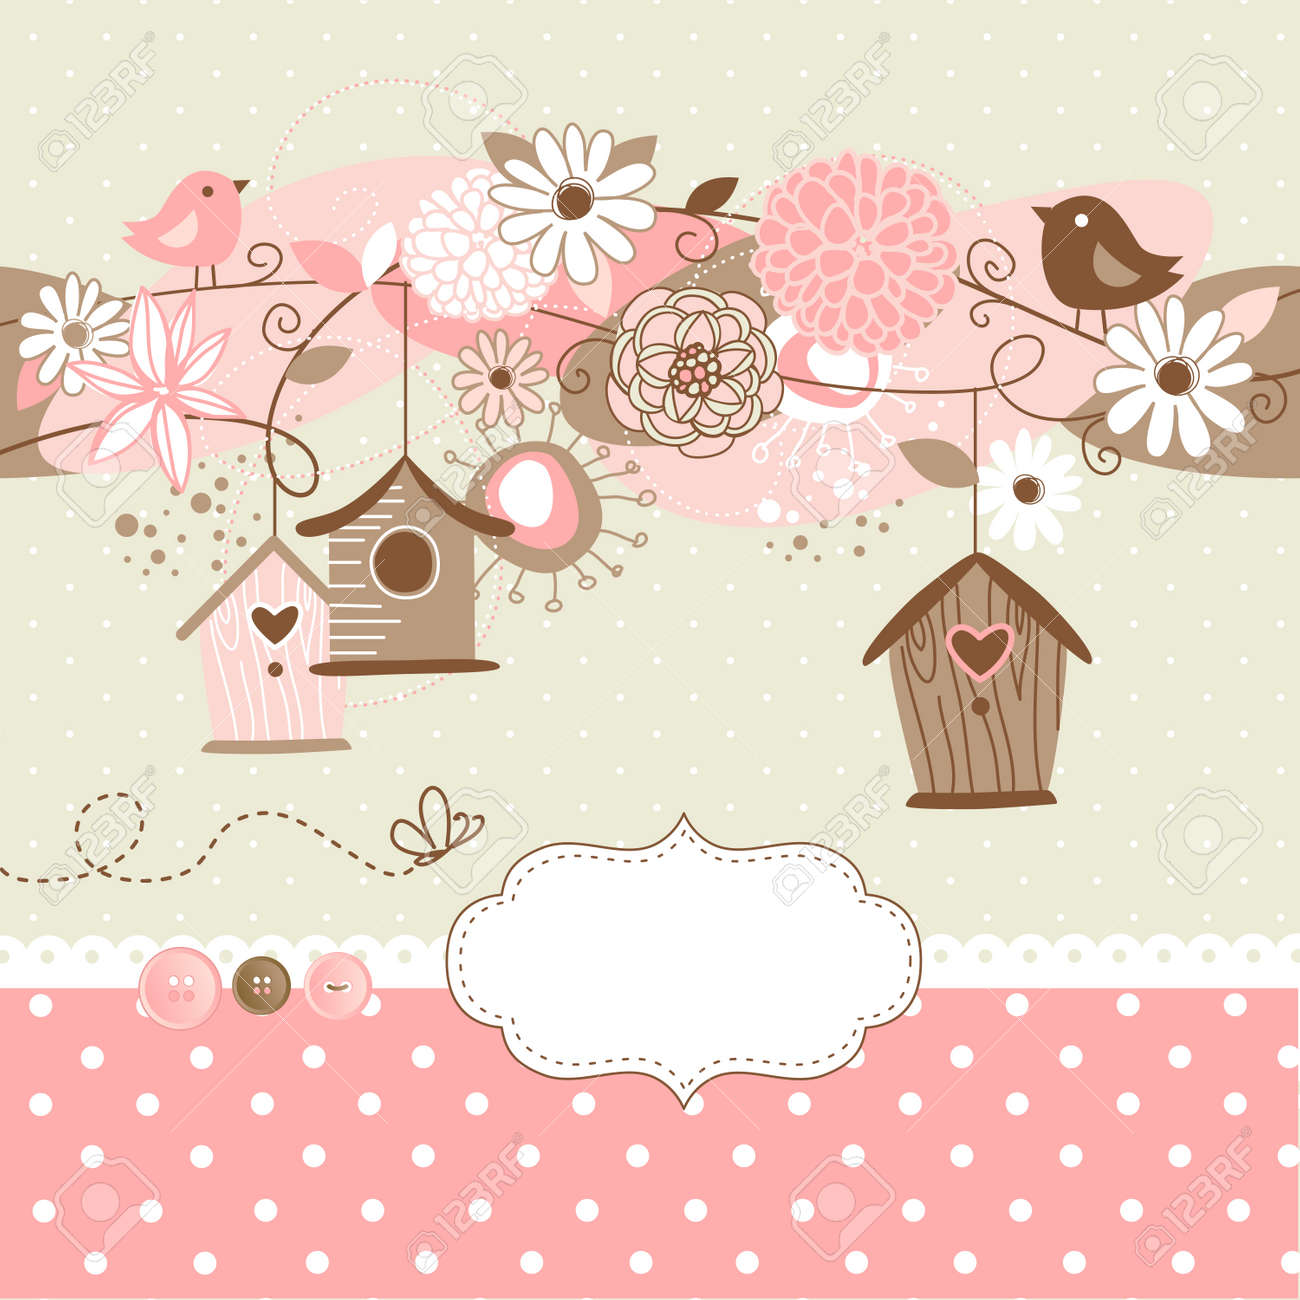 Beautiful Spring background with bird houses, birds and flowers Stock Vector - 20468396